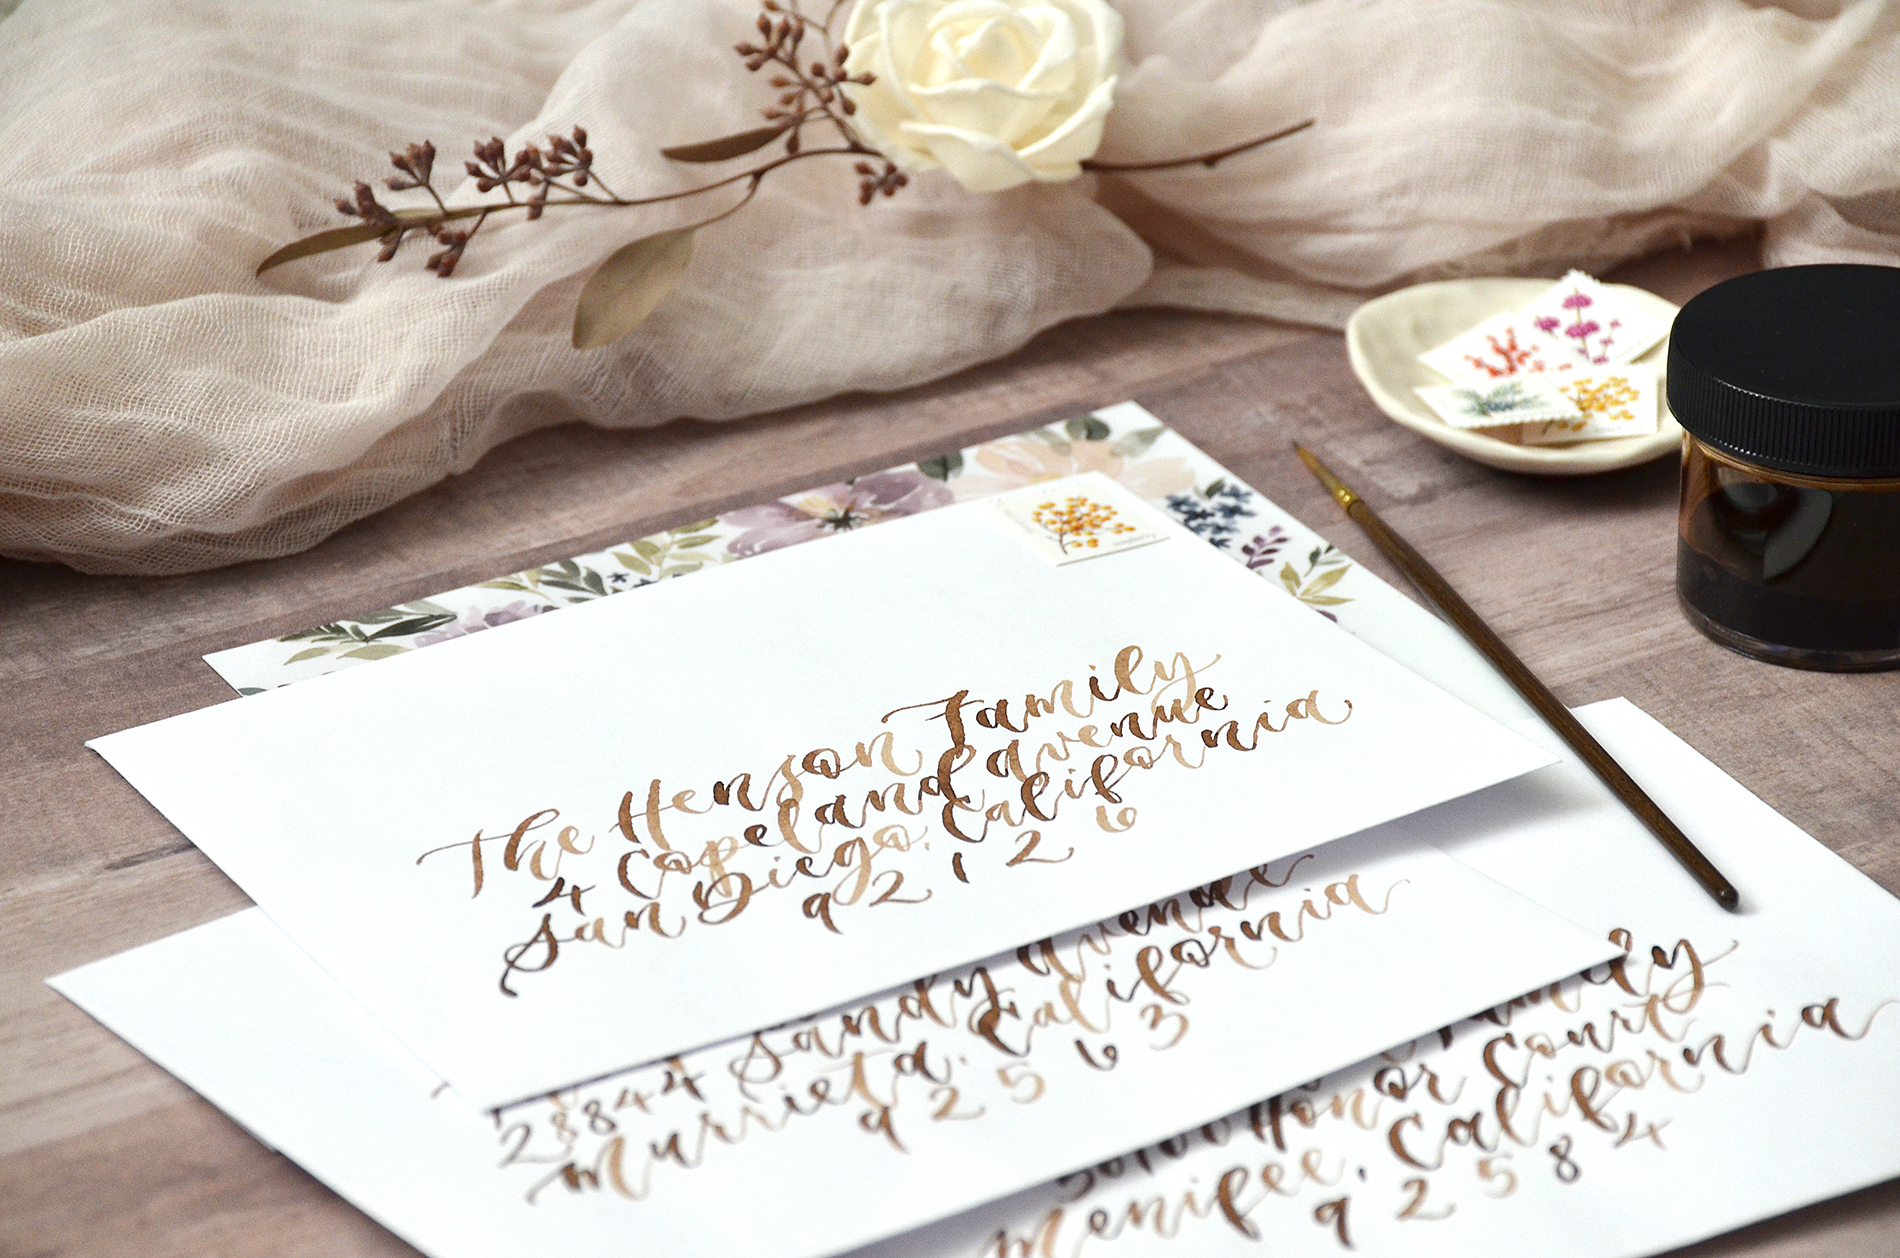 Christmas Card Envelope Calligraphy by Sam Allen Creates, Watercolor Walnut Ink